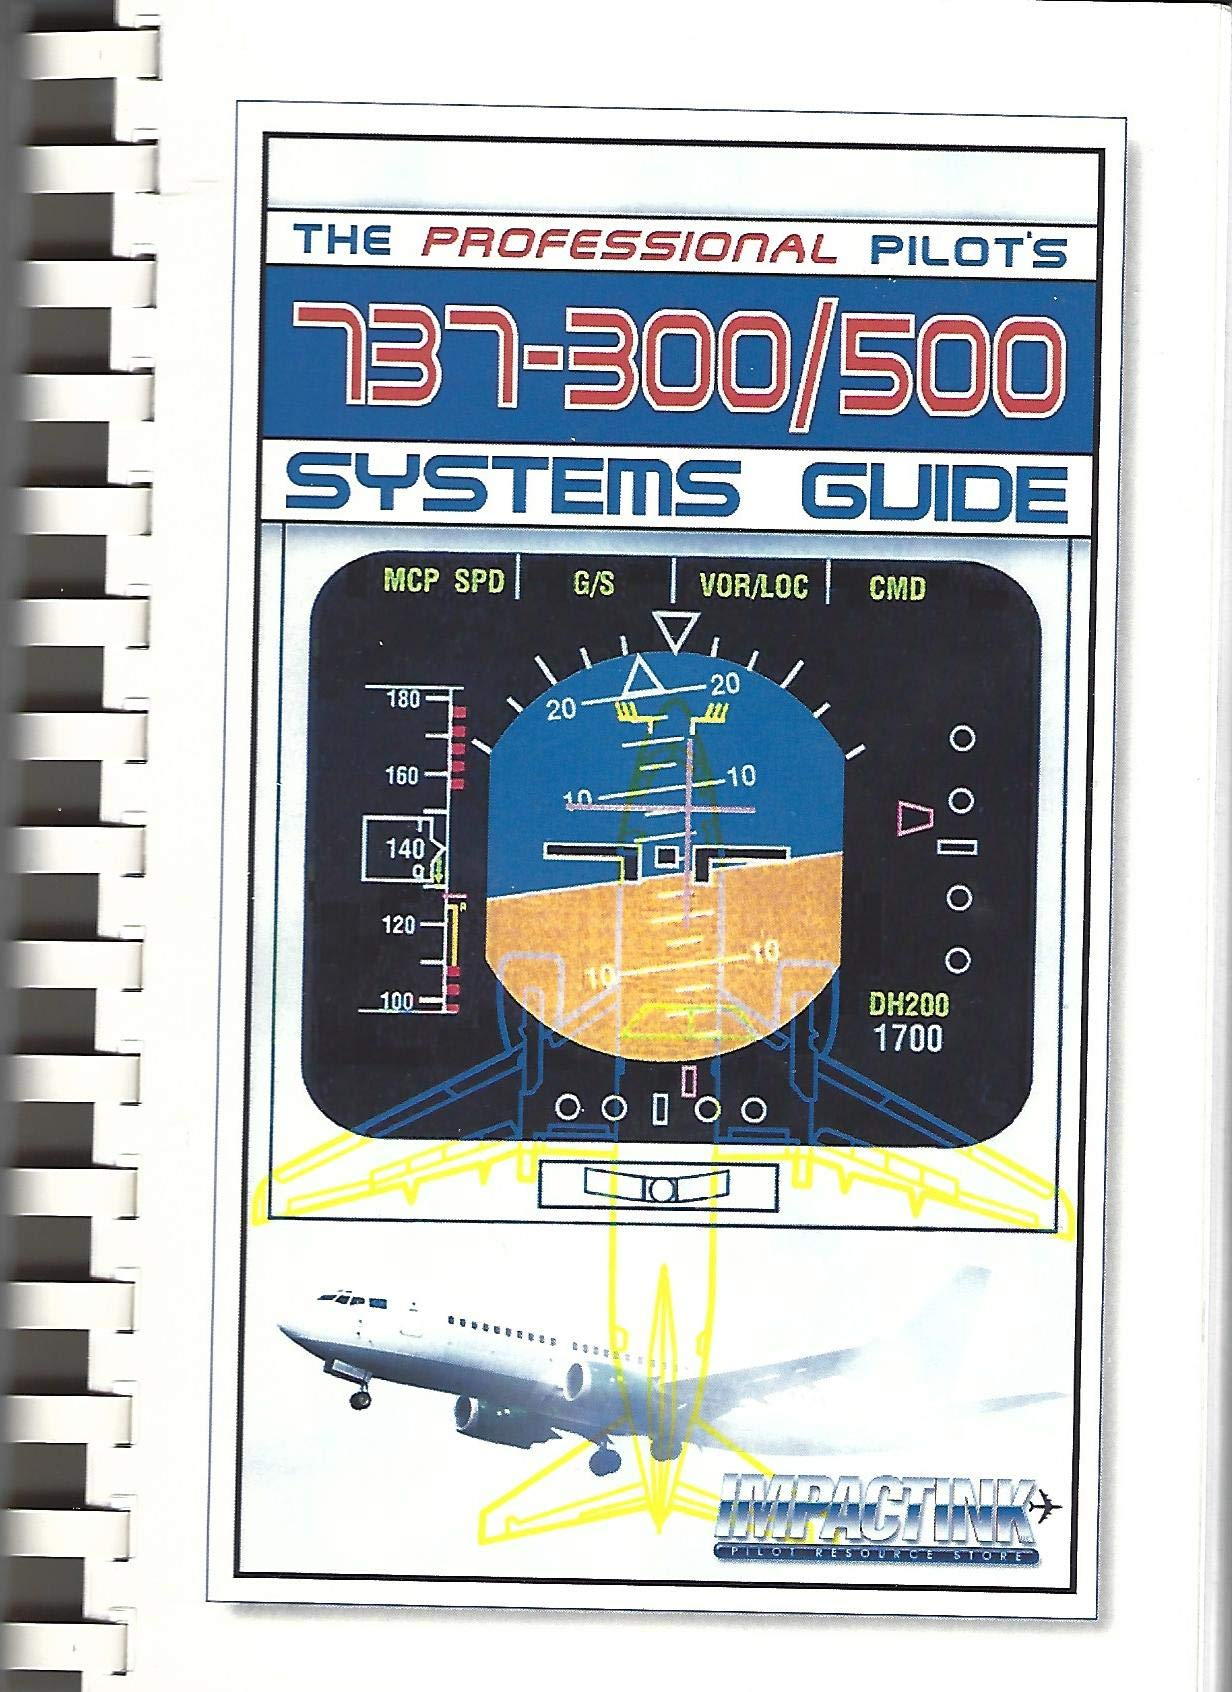 QUICK STUDY GUIDE FOR THE BOEING 737-300/500: Amazon.co.uk: Avsoft: Books